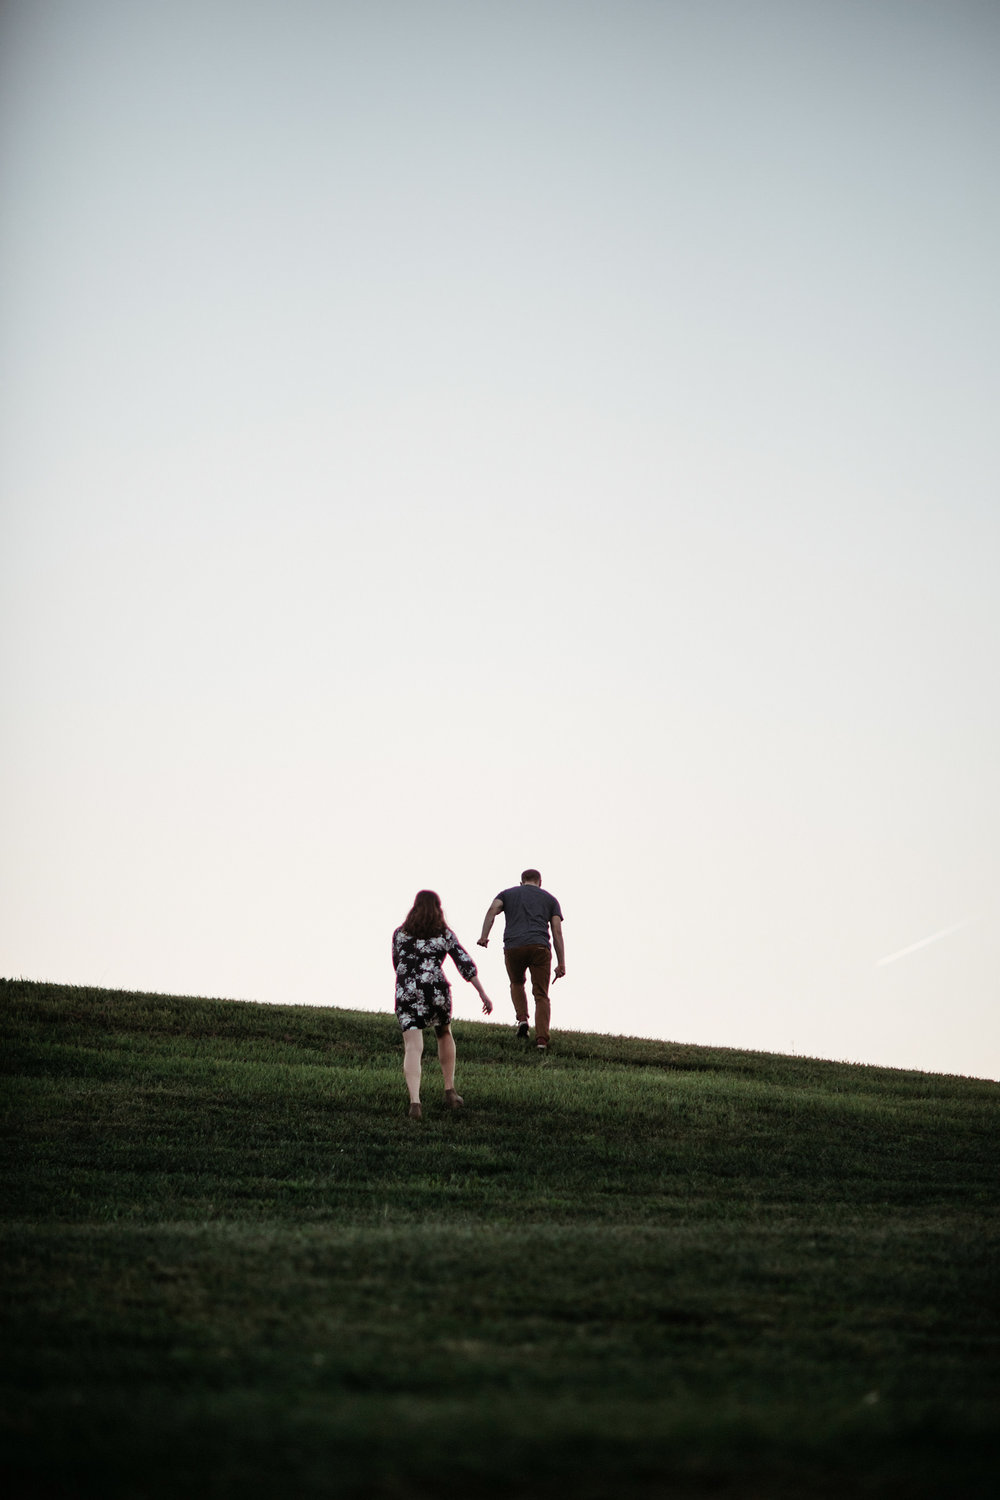 Kansas City_Penn Valley Park_Engagement Session_Kindling Wedding Photography43.JPG